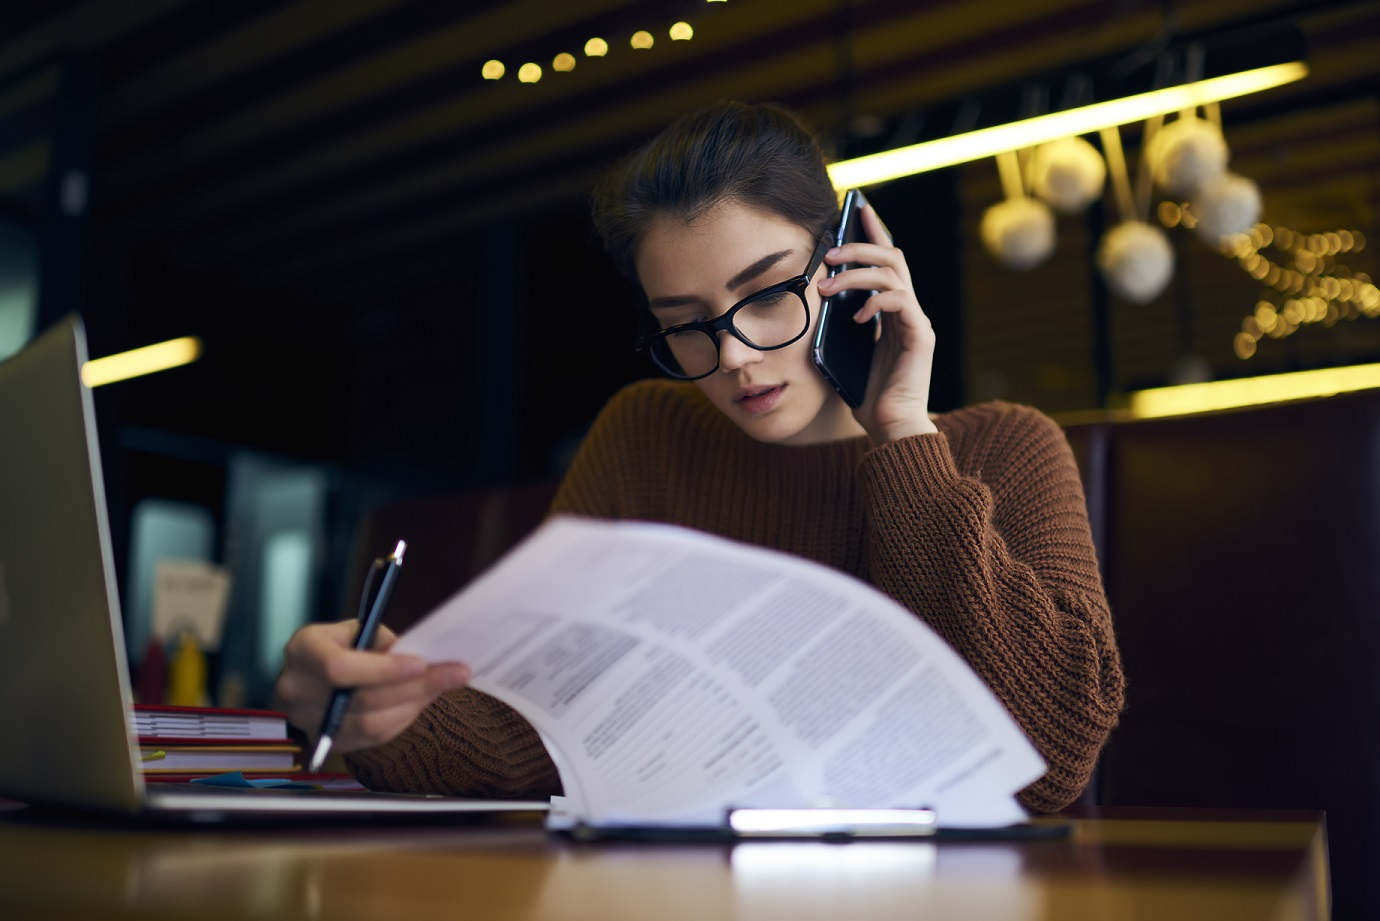 femal worker paging through documents while on phone